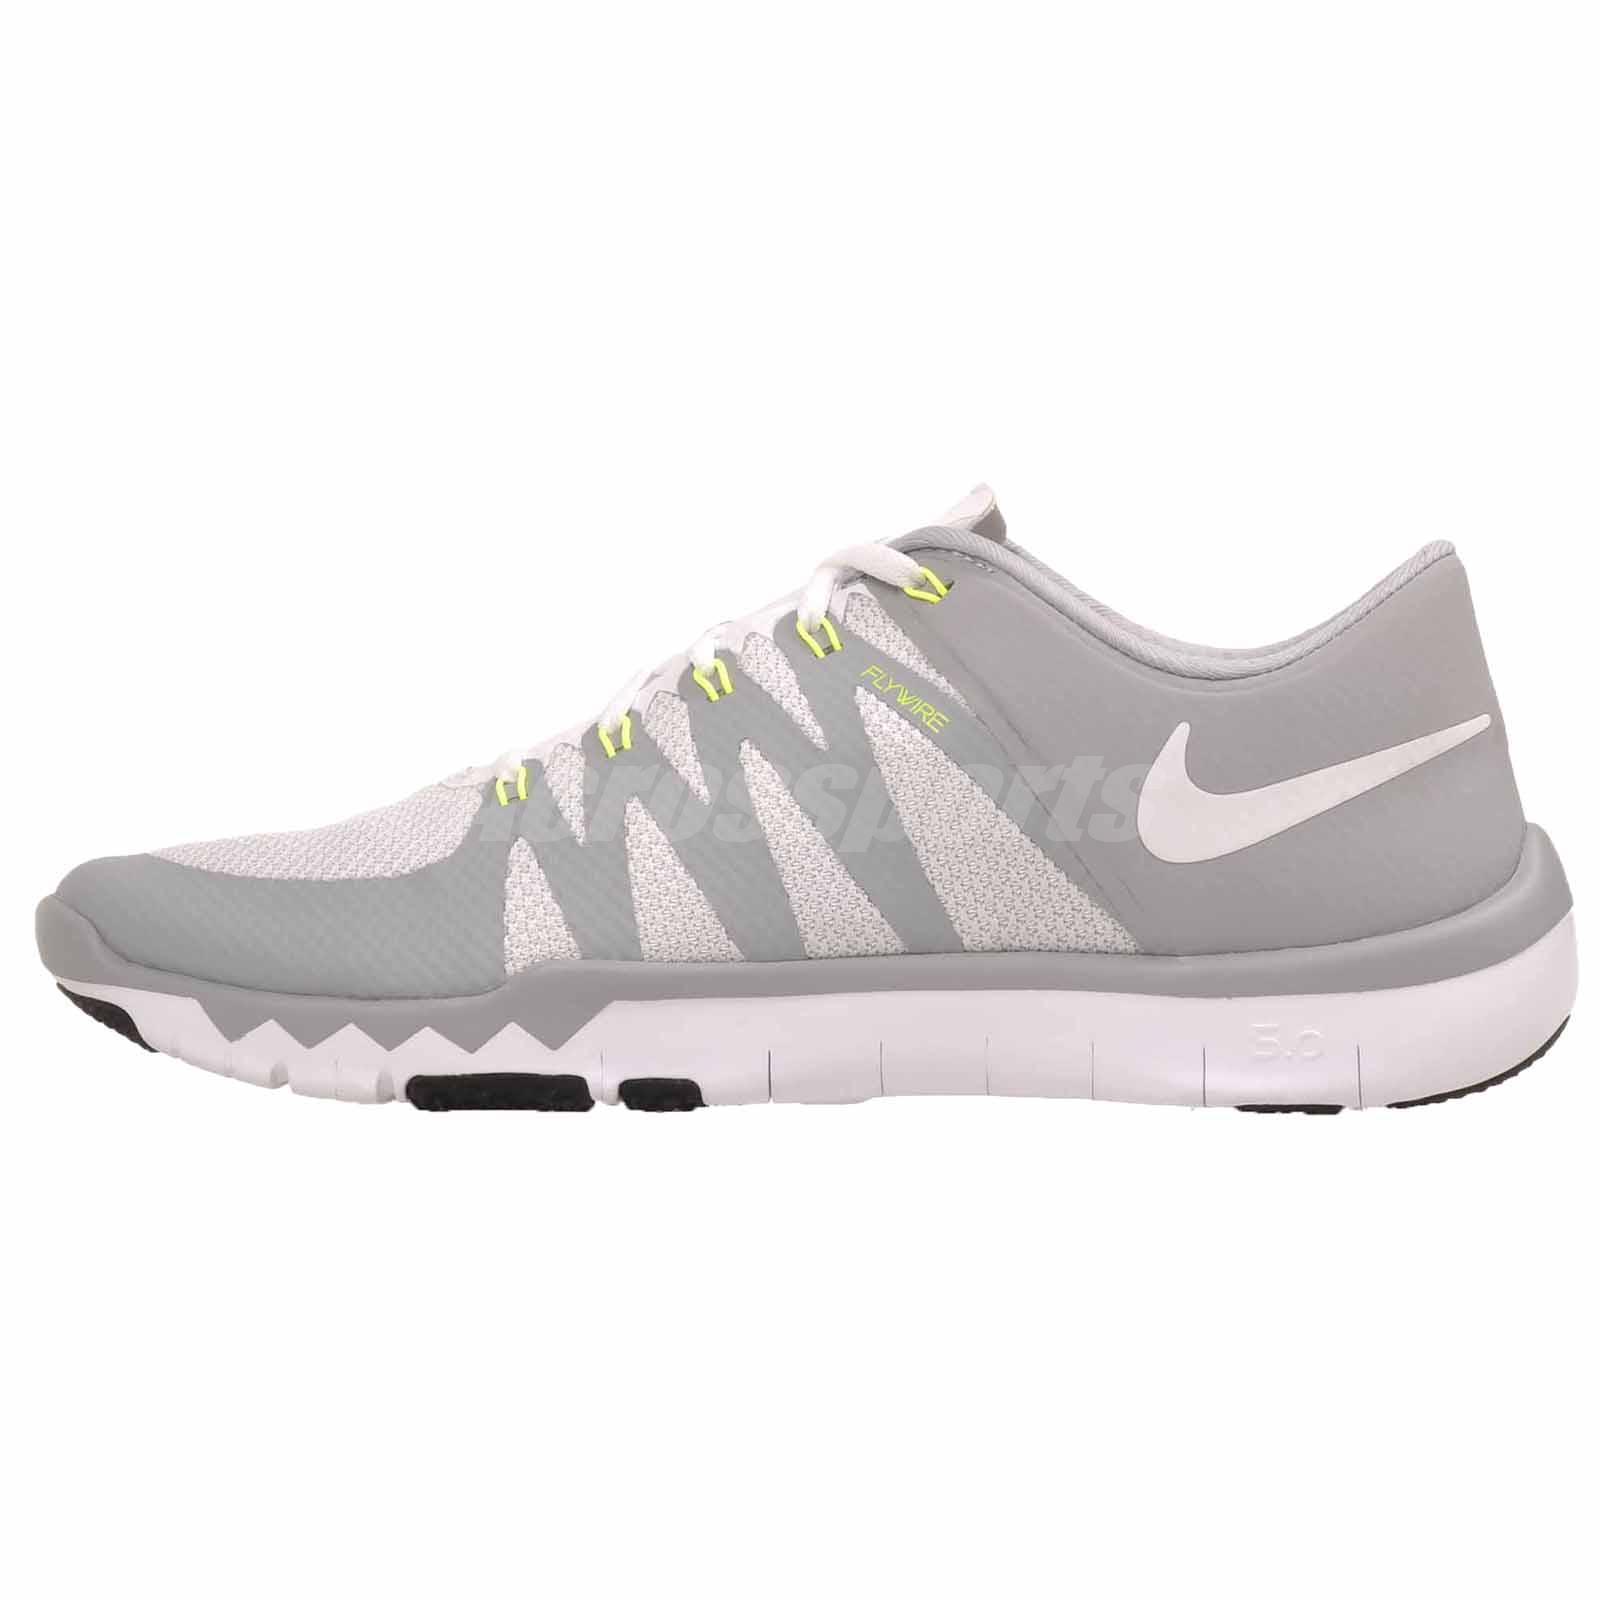 5d7a7ee71a7b Details about Nike Free Trainer 5.0 V6 Cross Training Mens Shoes White Grey  719922-100